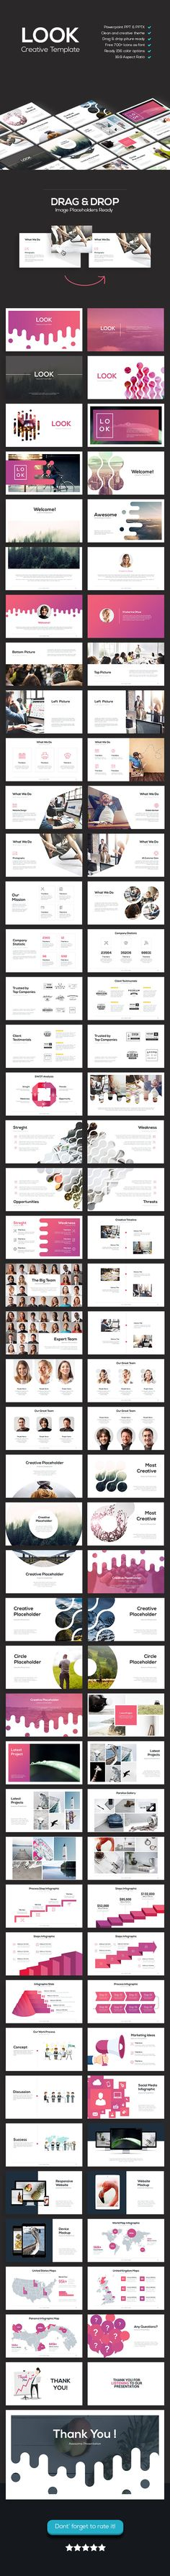 Look - Creative Theme - PowerPoint Templates Presentation Templates                                                                                                                                                                                 More